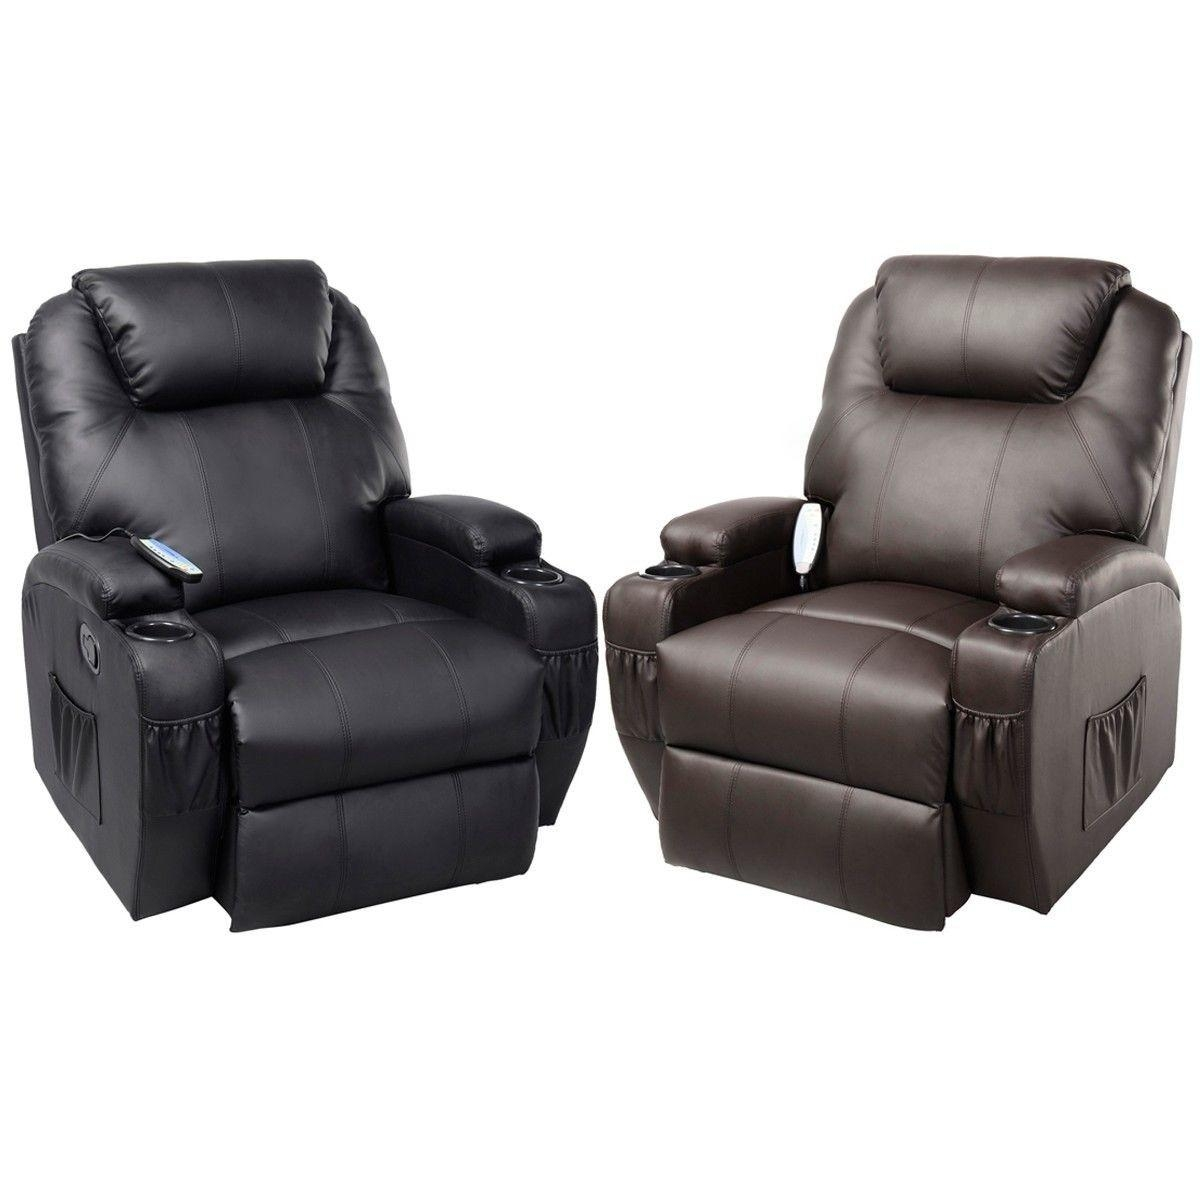 Ergonomic Heated Massage Recliner Sofa Chair Deluxe Lounge Inside Recliner Sofa Chairs (Image 10 of 20)